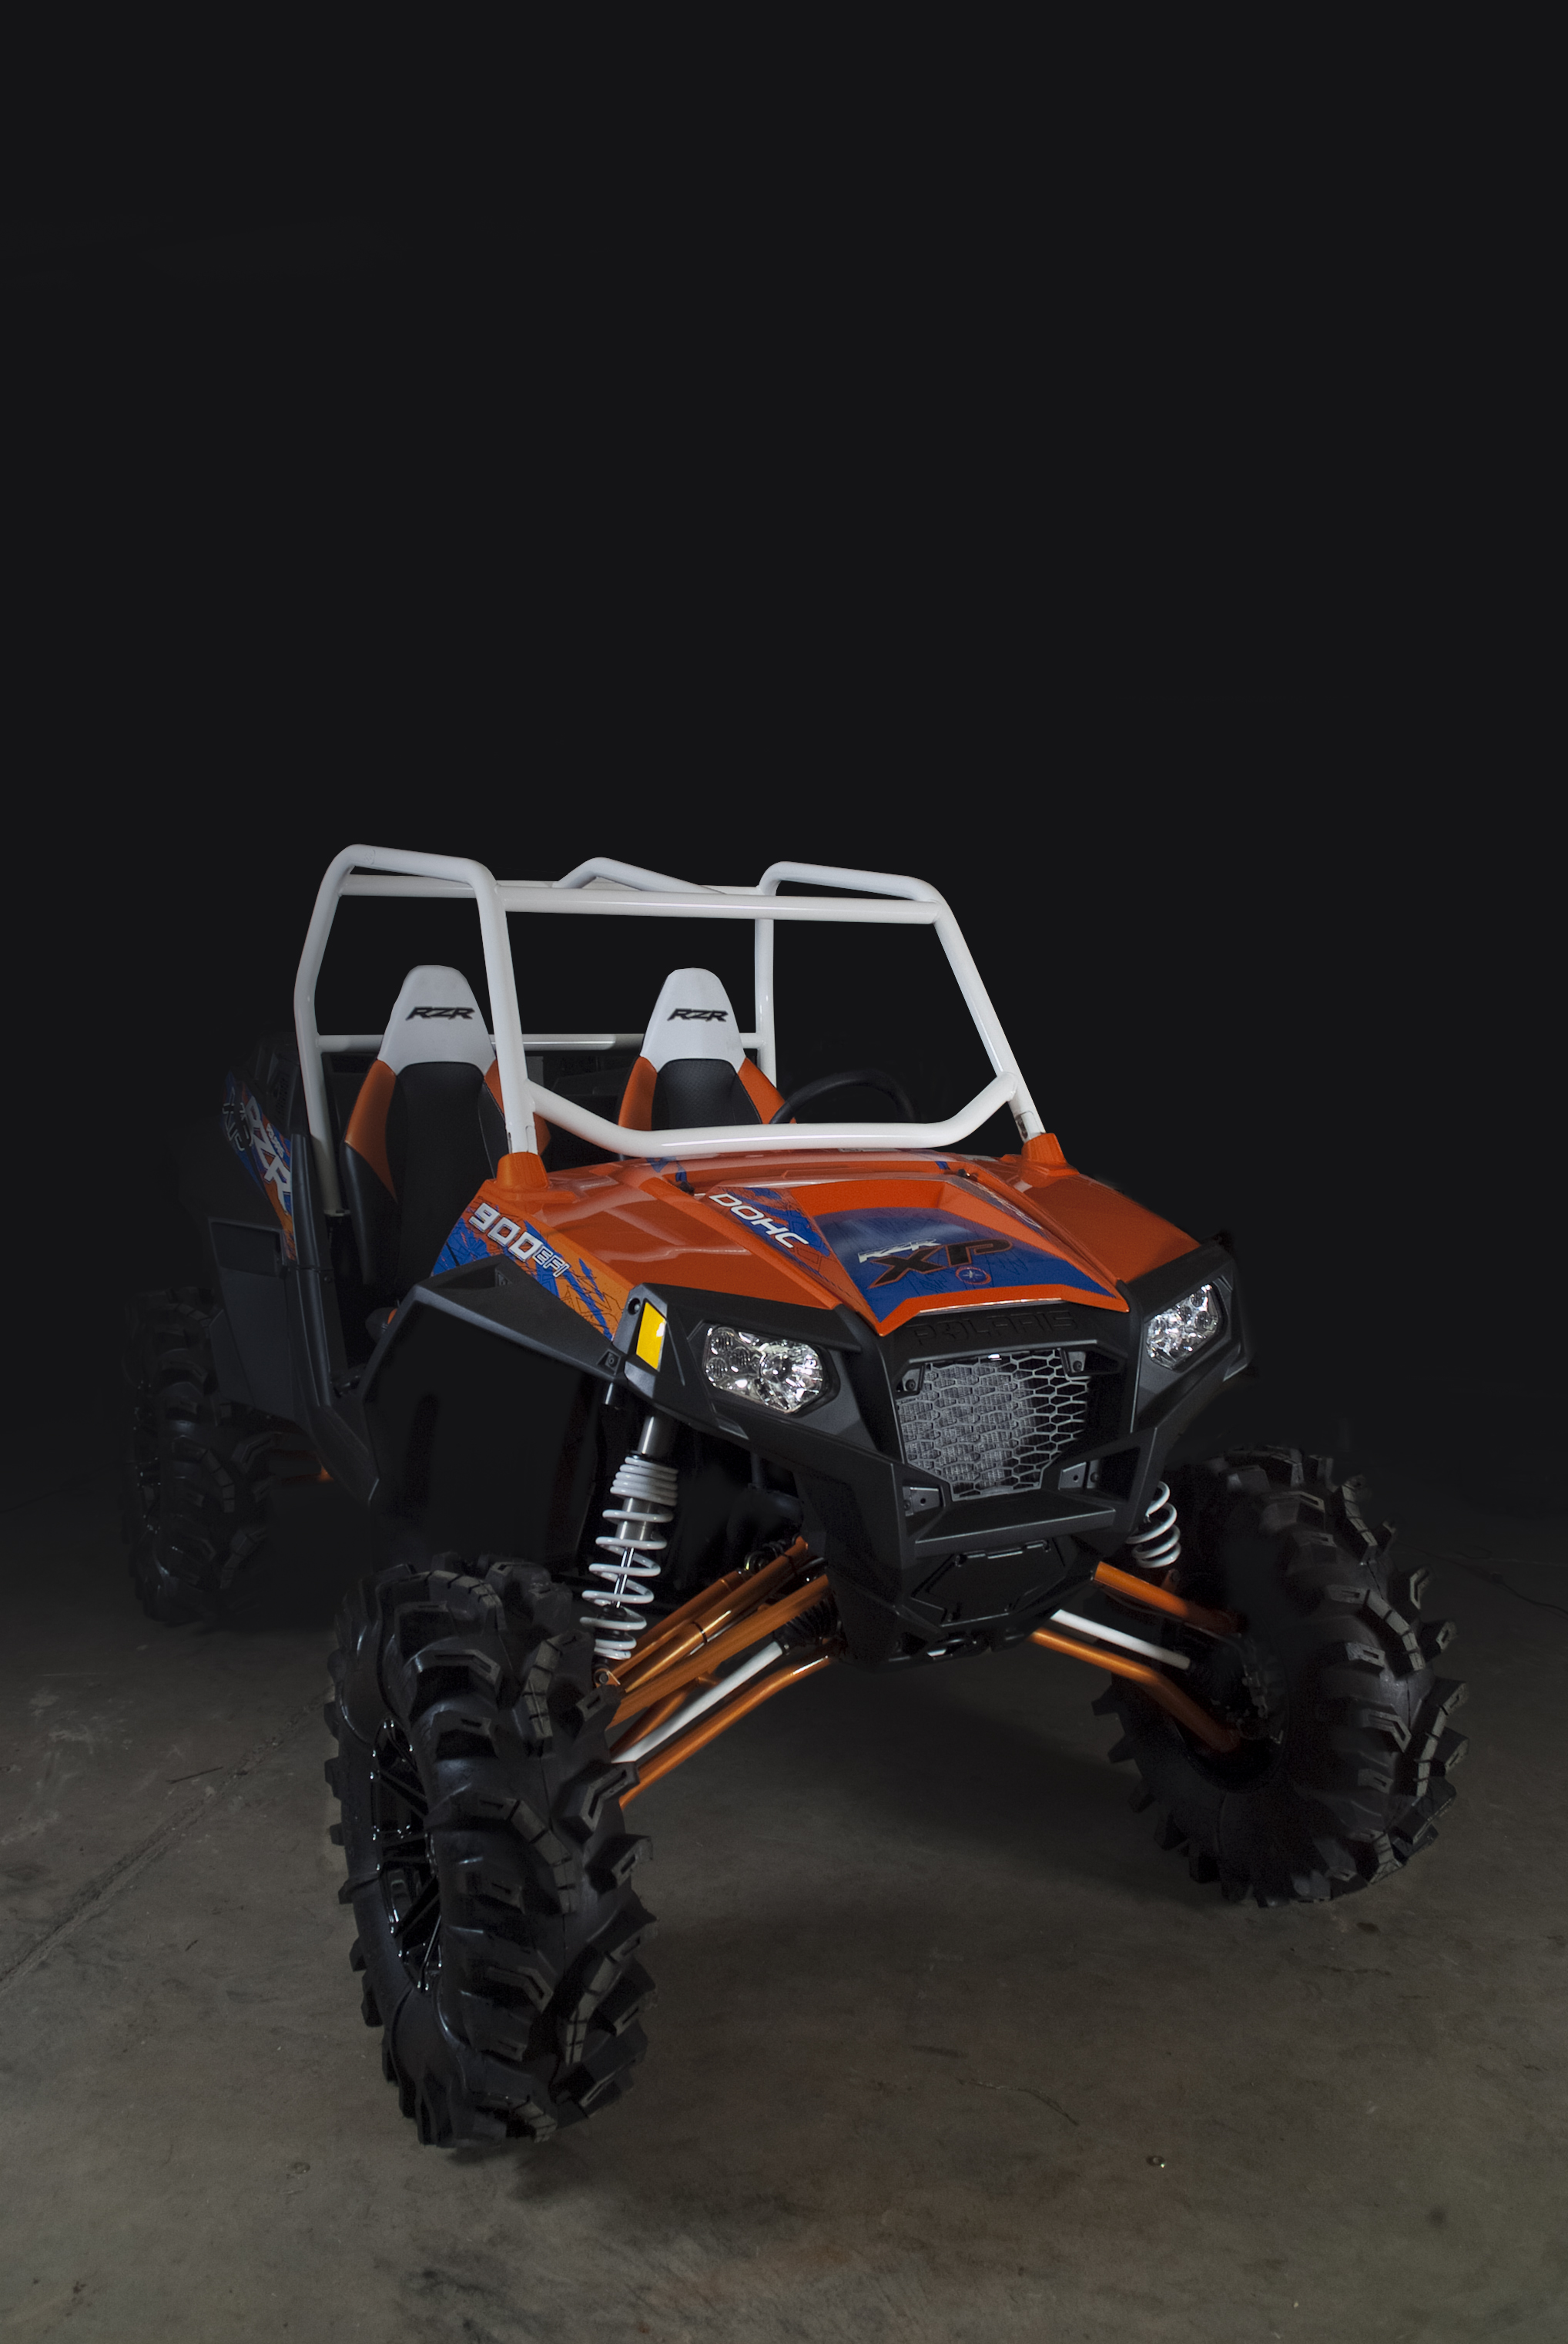 2013 RZR 900 XP Custom Build by S3 Power Sports